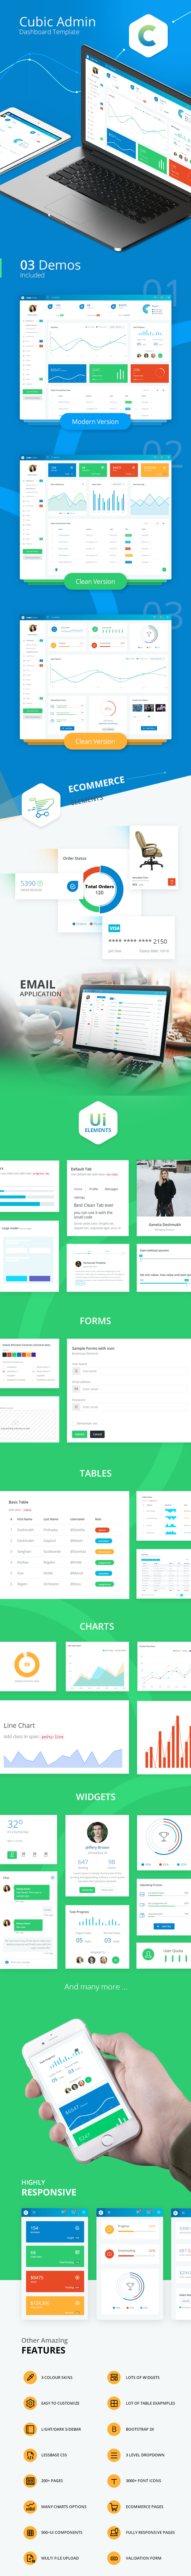 cubic - Cubic Admin - Dashboard + UI Kit Framework with Frontend Templates